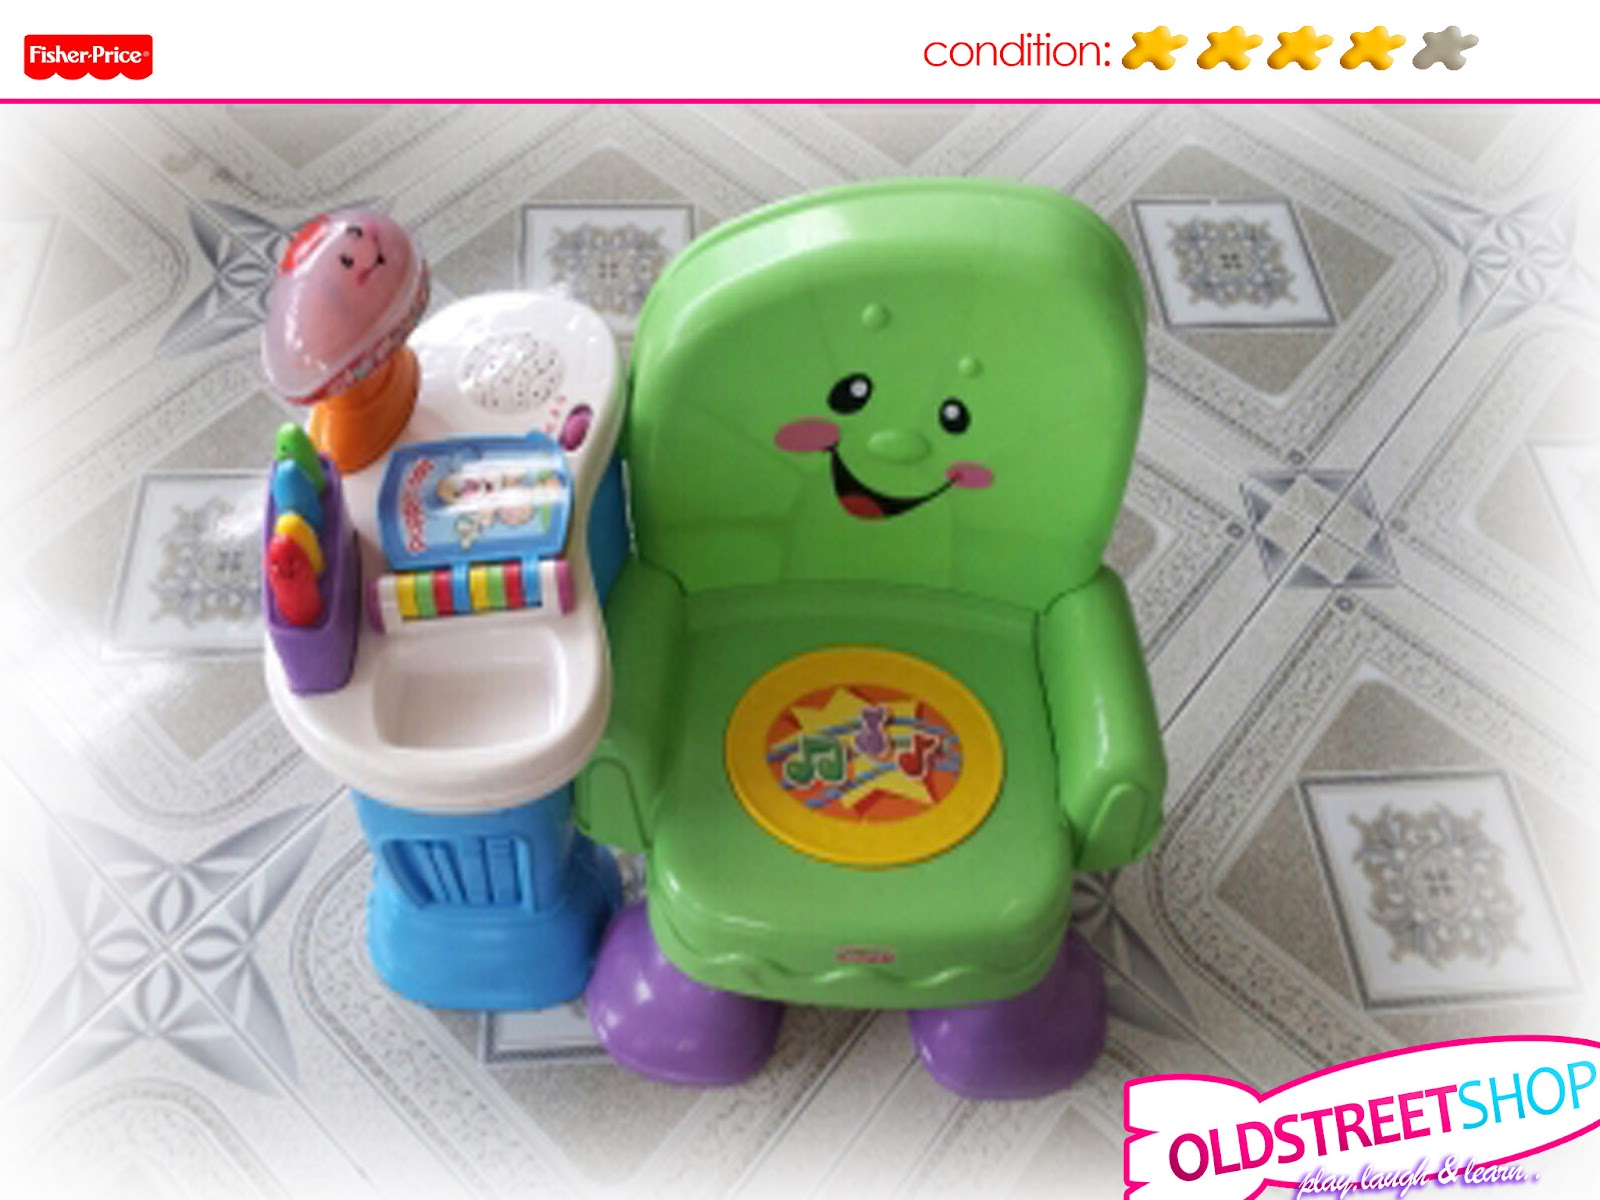 Storytime Chair Fisher Price Storytime Chair Laugh Learn Smart Stages Chair